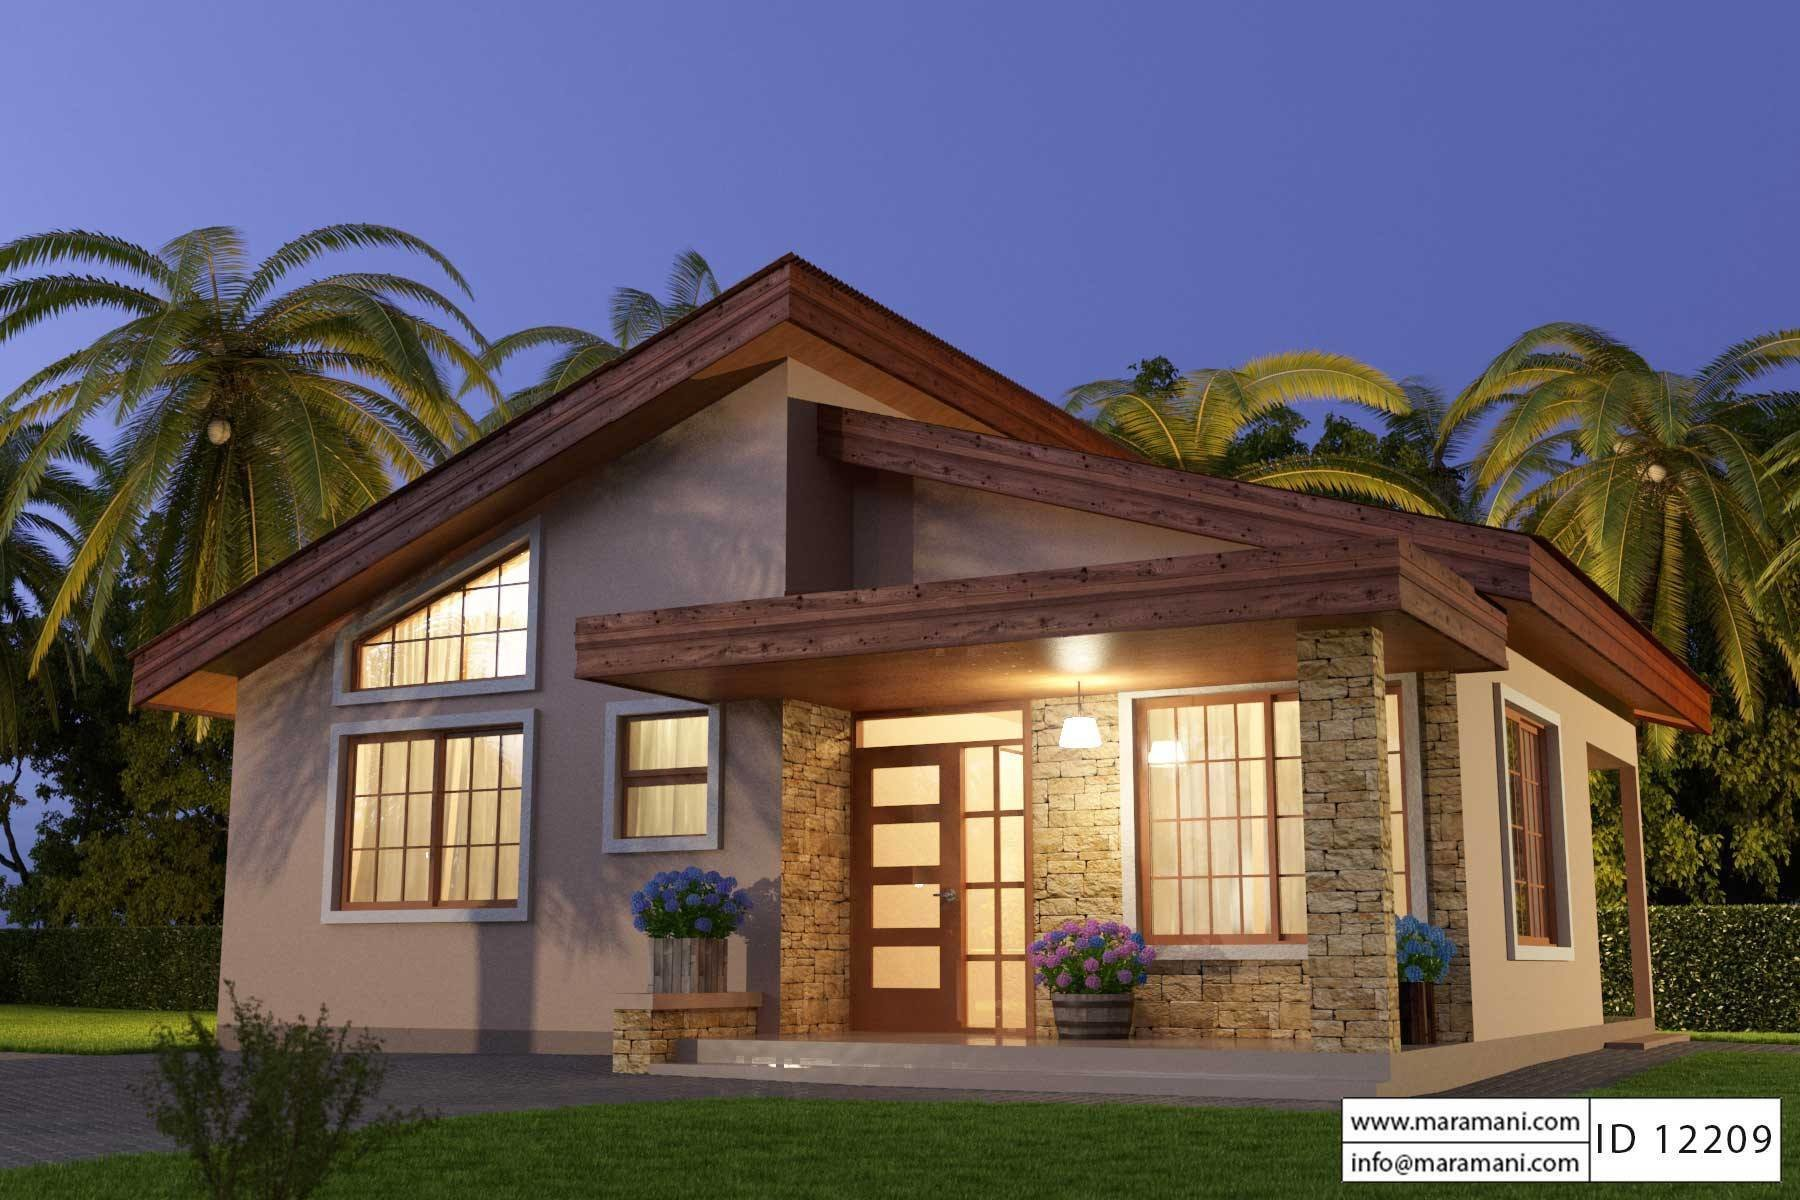 Best 2 Bedroom House Plan Id 12209 House Plans By Maramani With Pictures